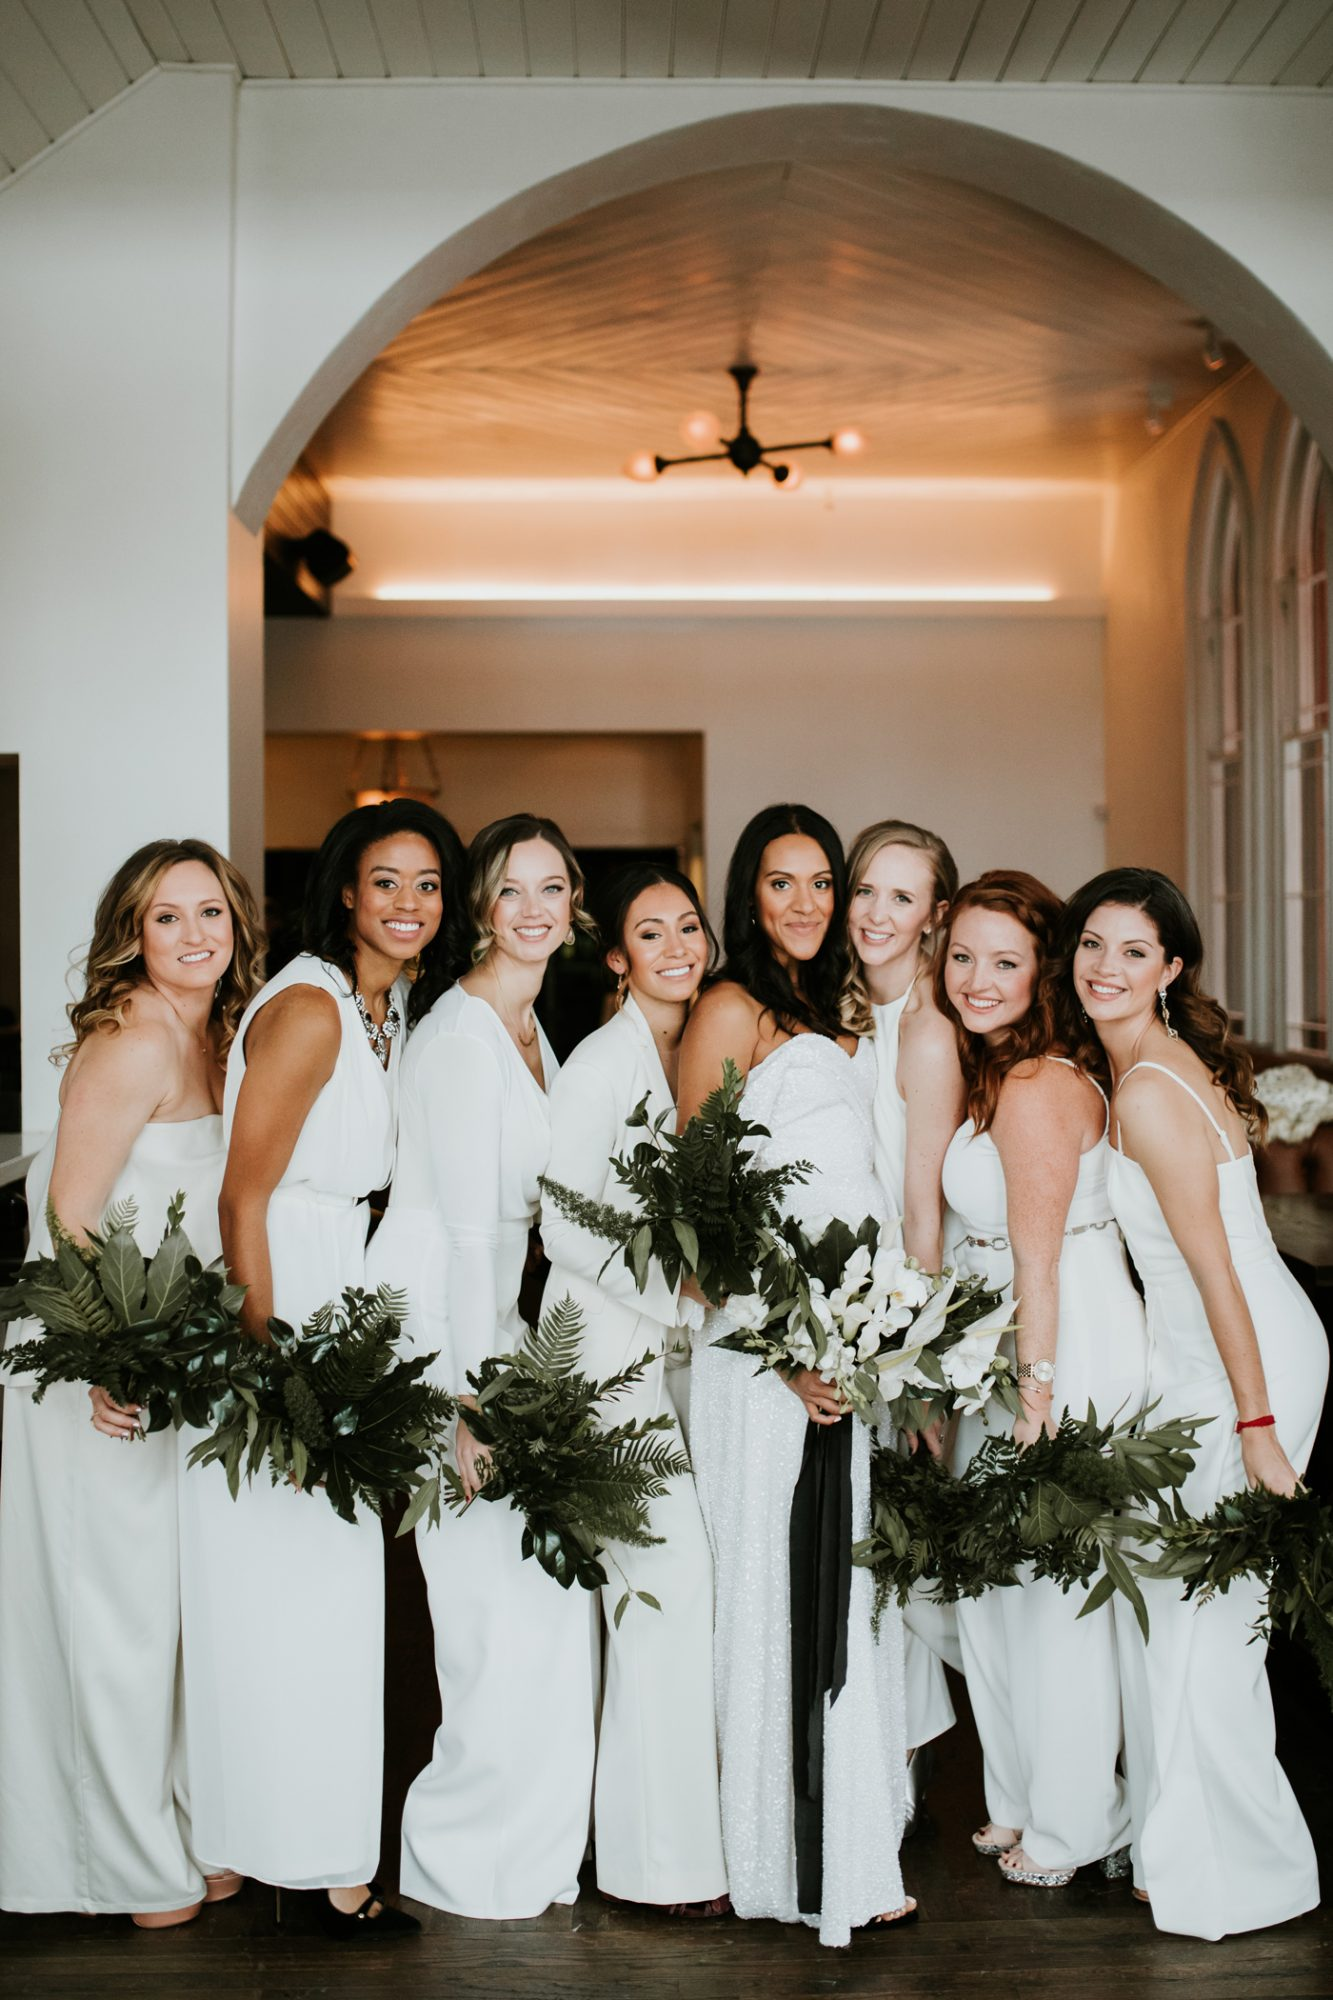 women wearing white bridesmaids jumpsuits holding greenery bouqets